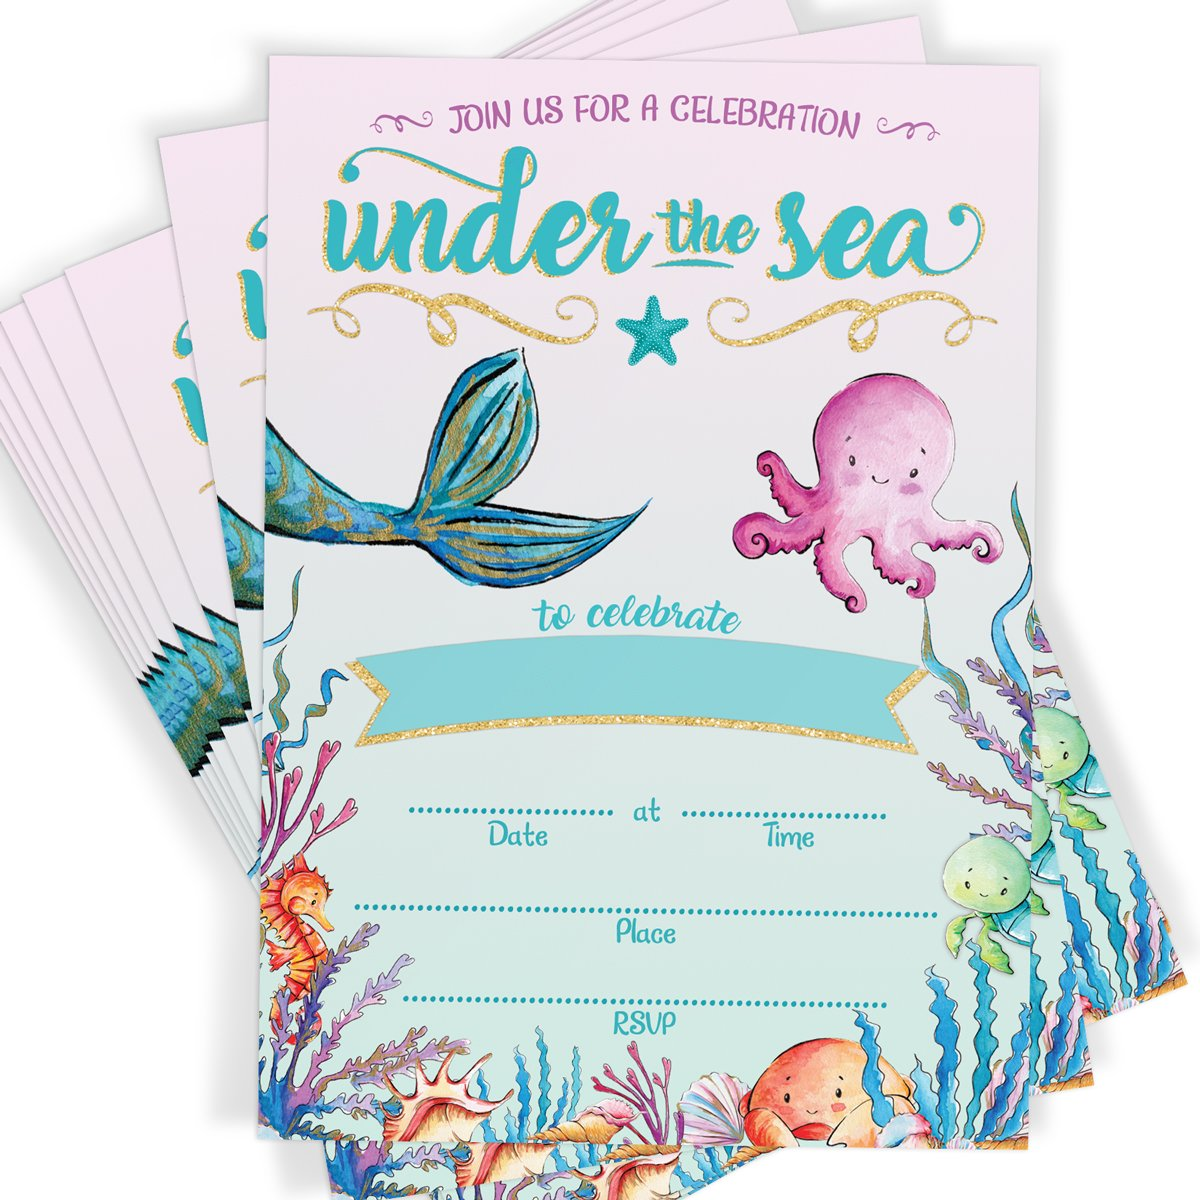 Mermaid Invitations | Under The Sea | 16 Invitations and Envelopes | Mermaid Party by Printed Party